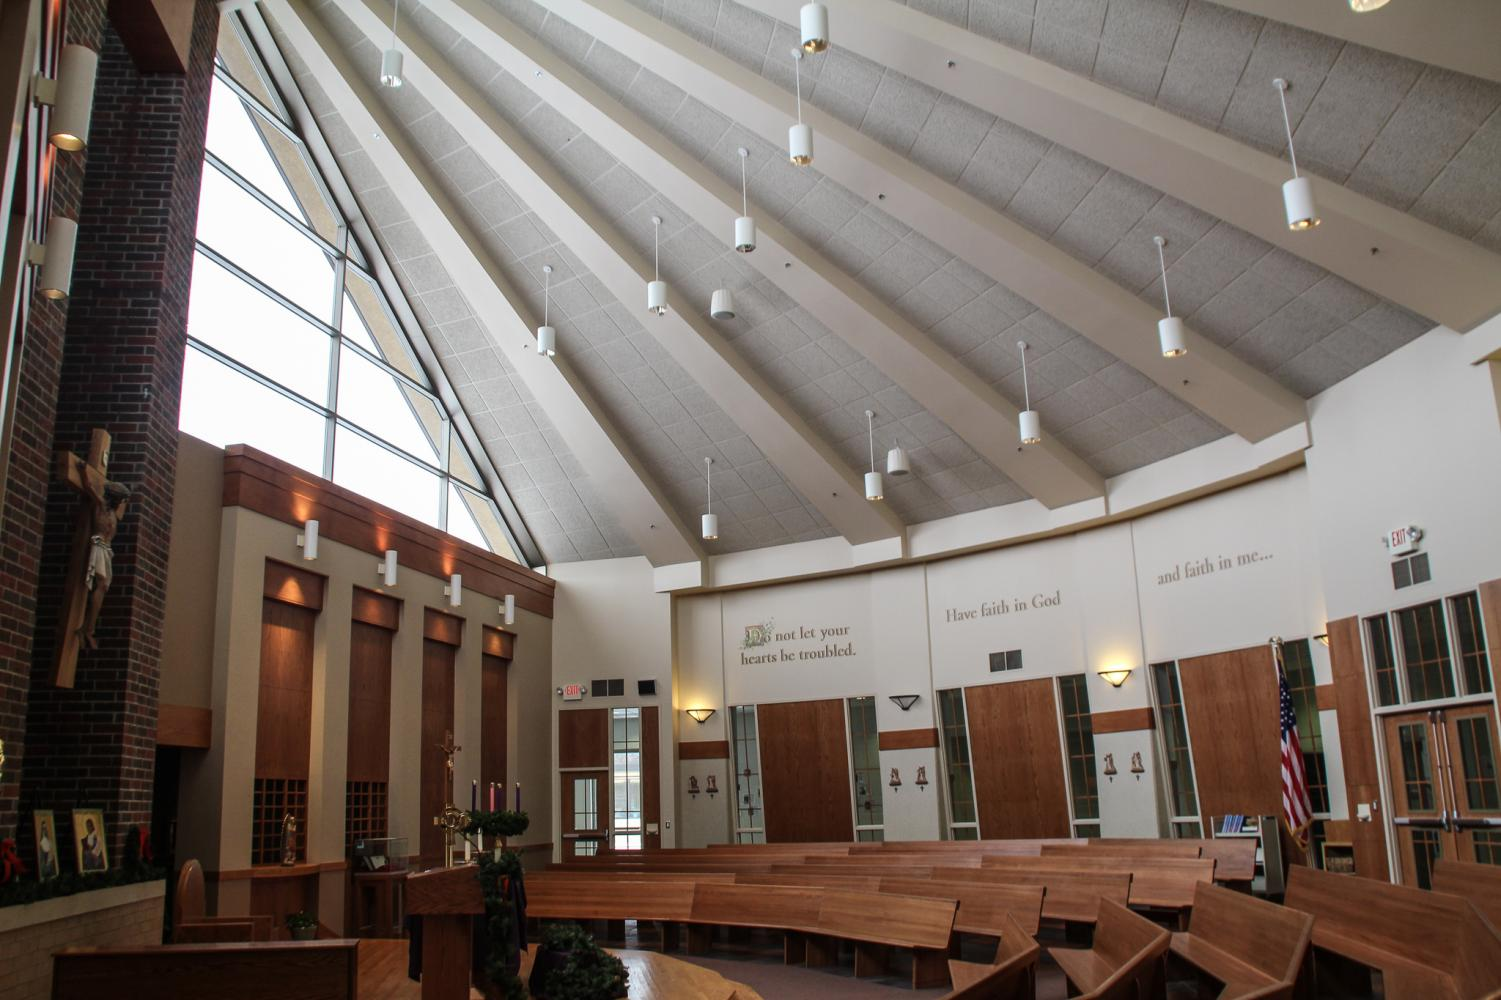 The BSM chapel is home to the Red Knight Journey meetings.